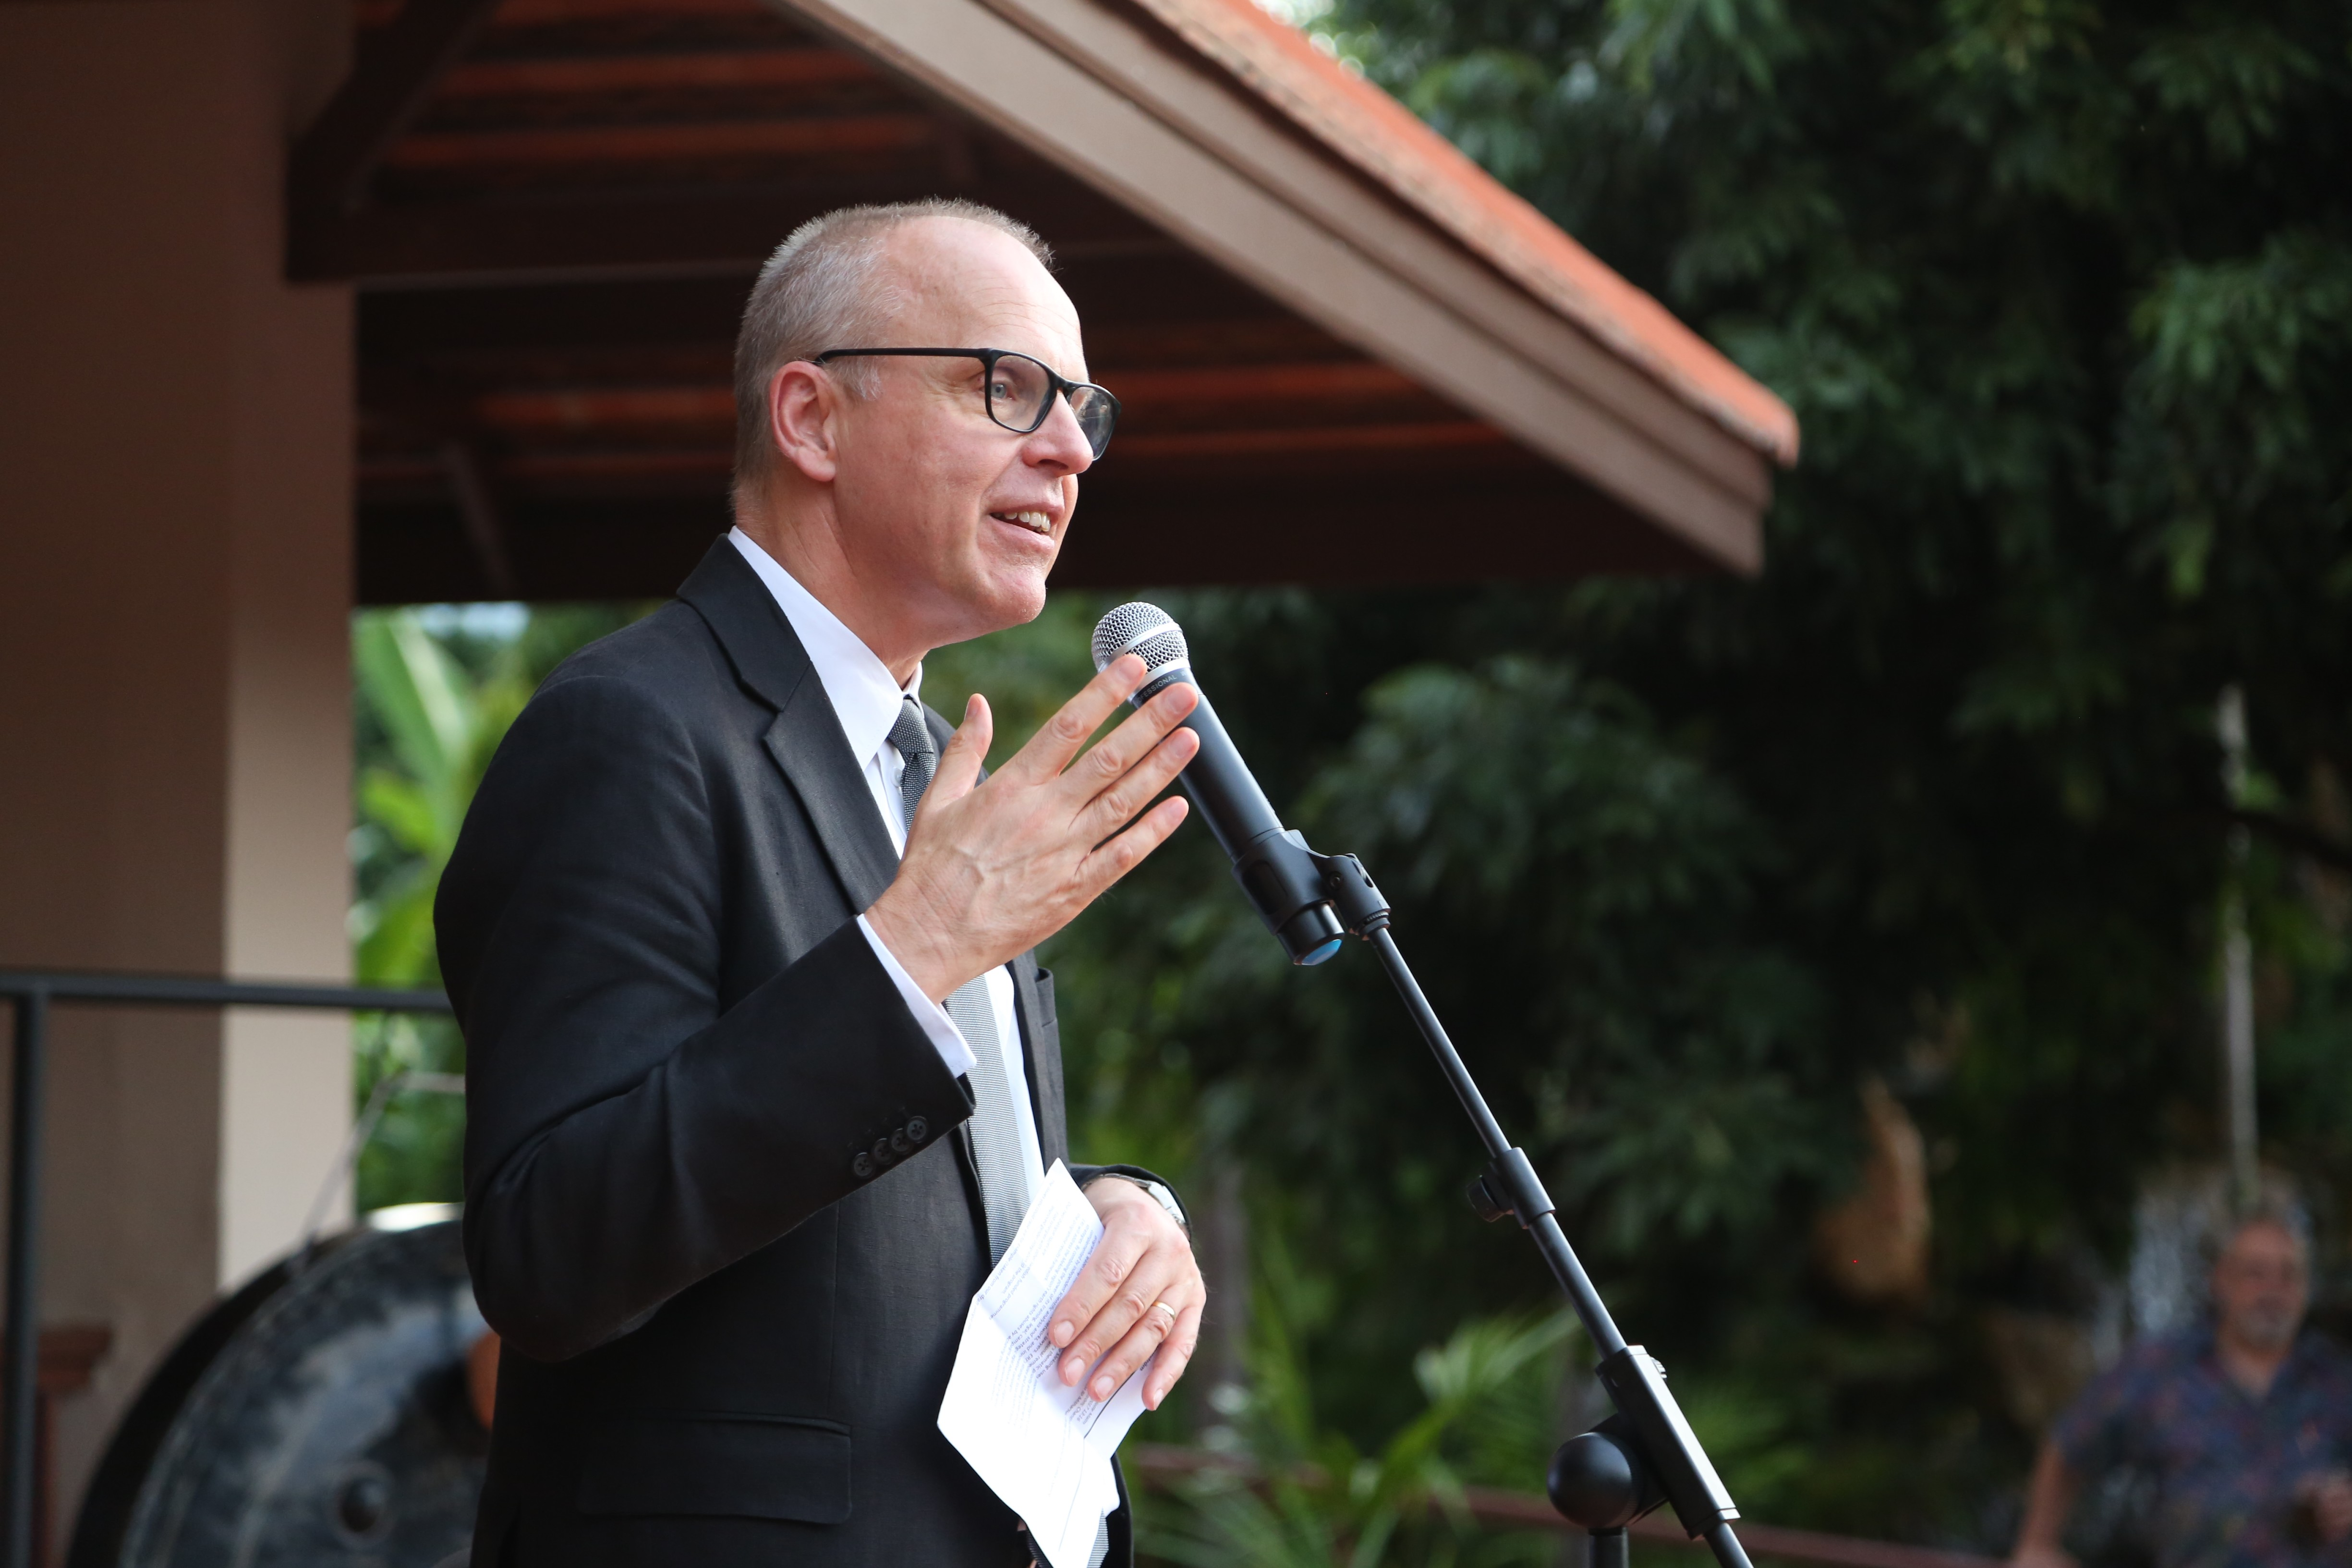 Swedish Ambassador to Thailand, Lao PDR, and Myanmar Staffan Herrström speaks at the ceremony.